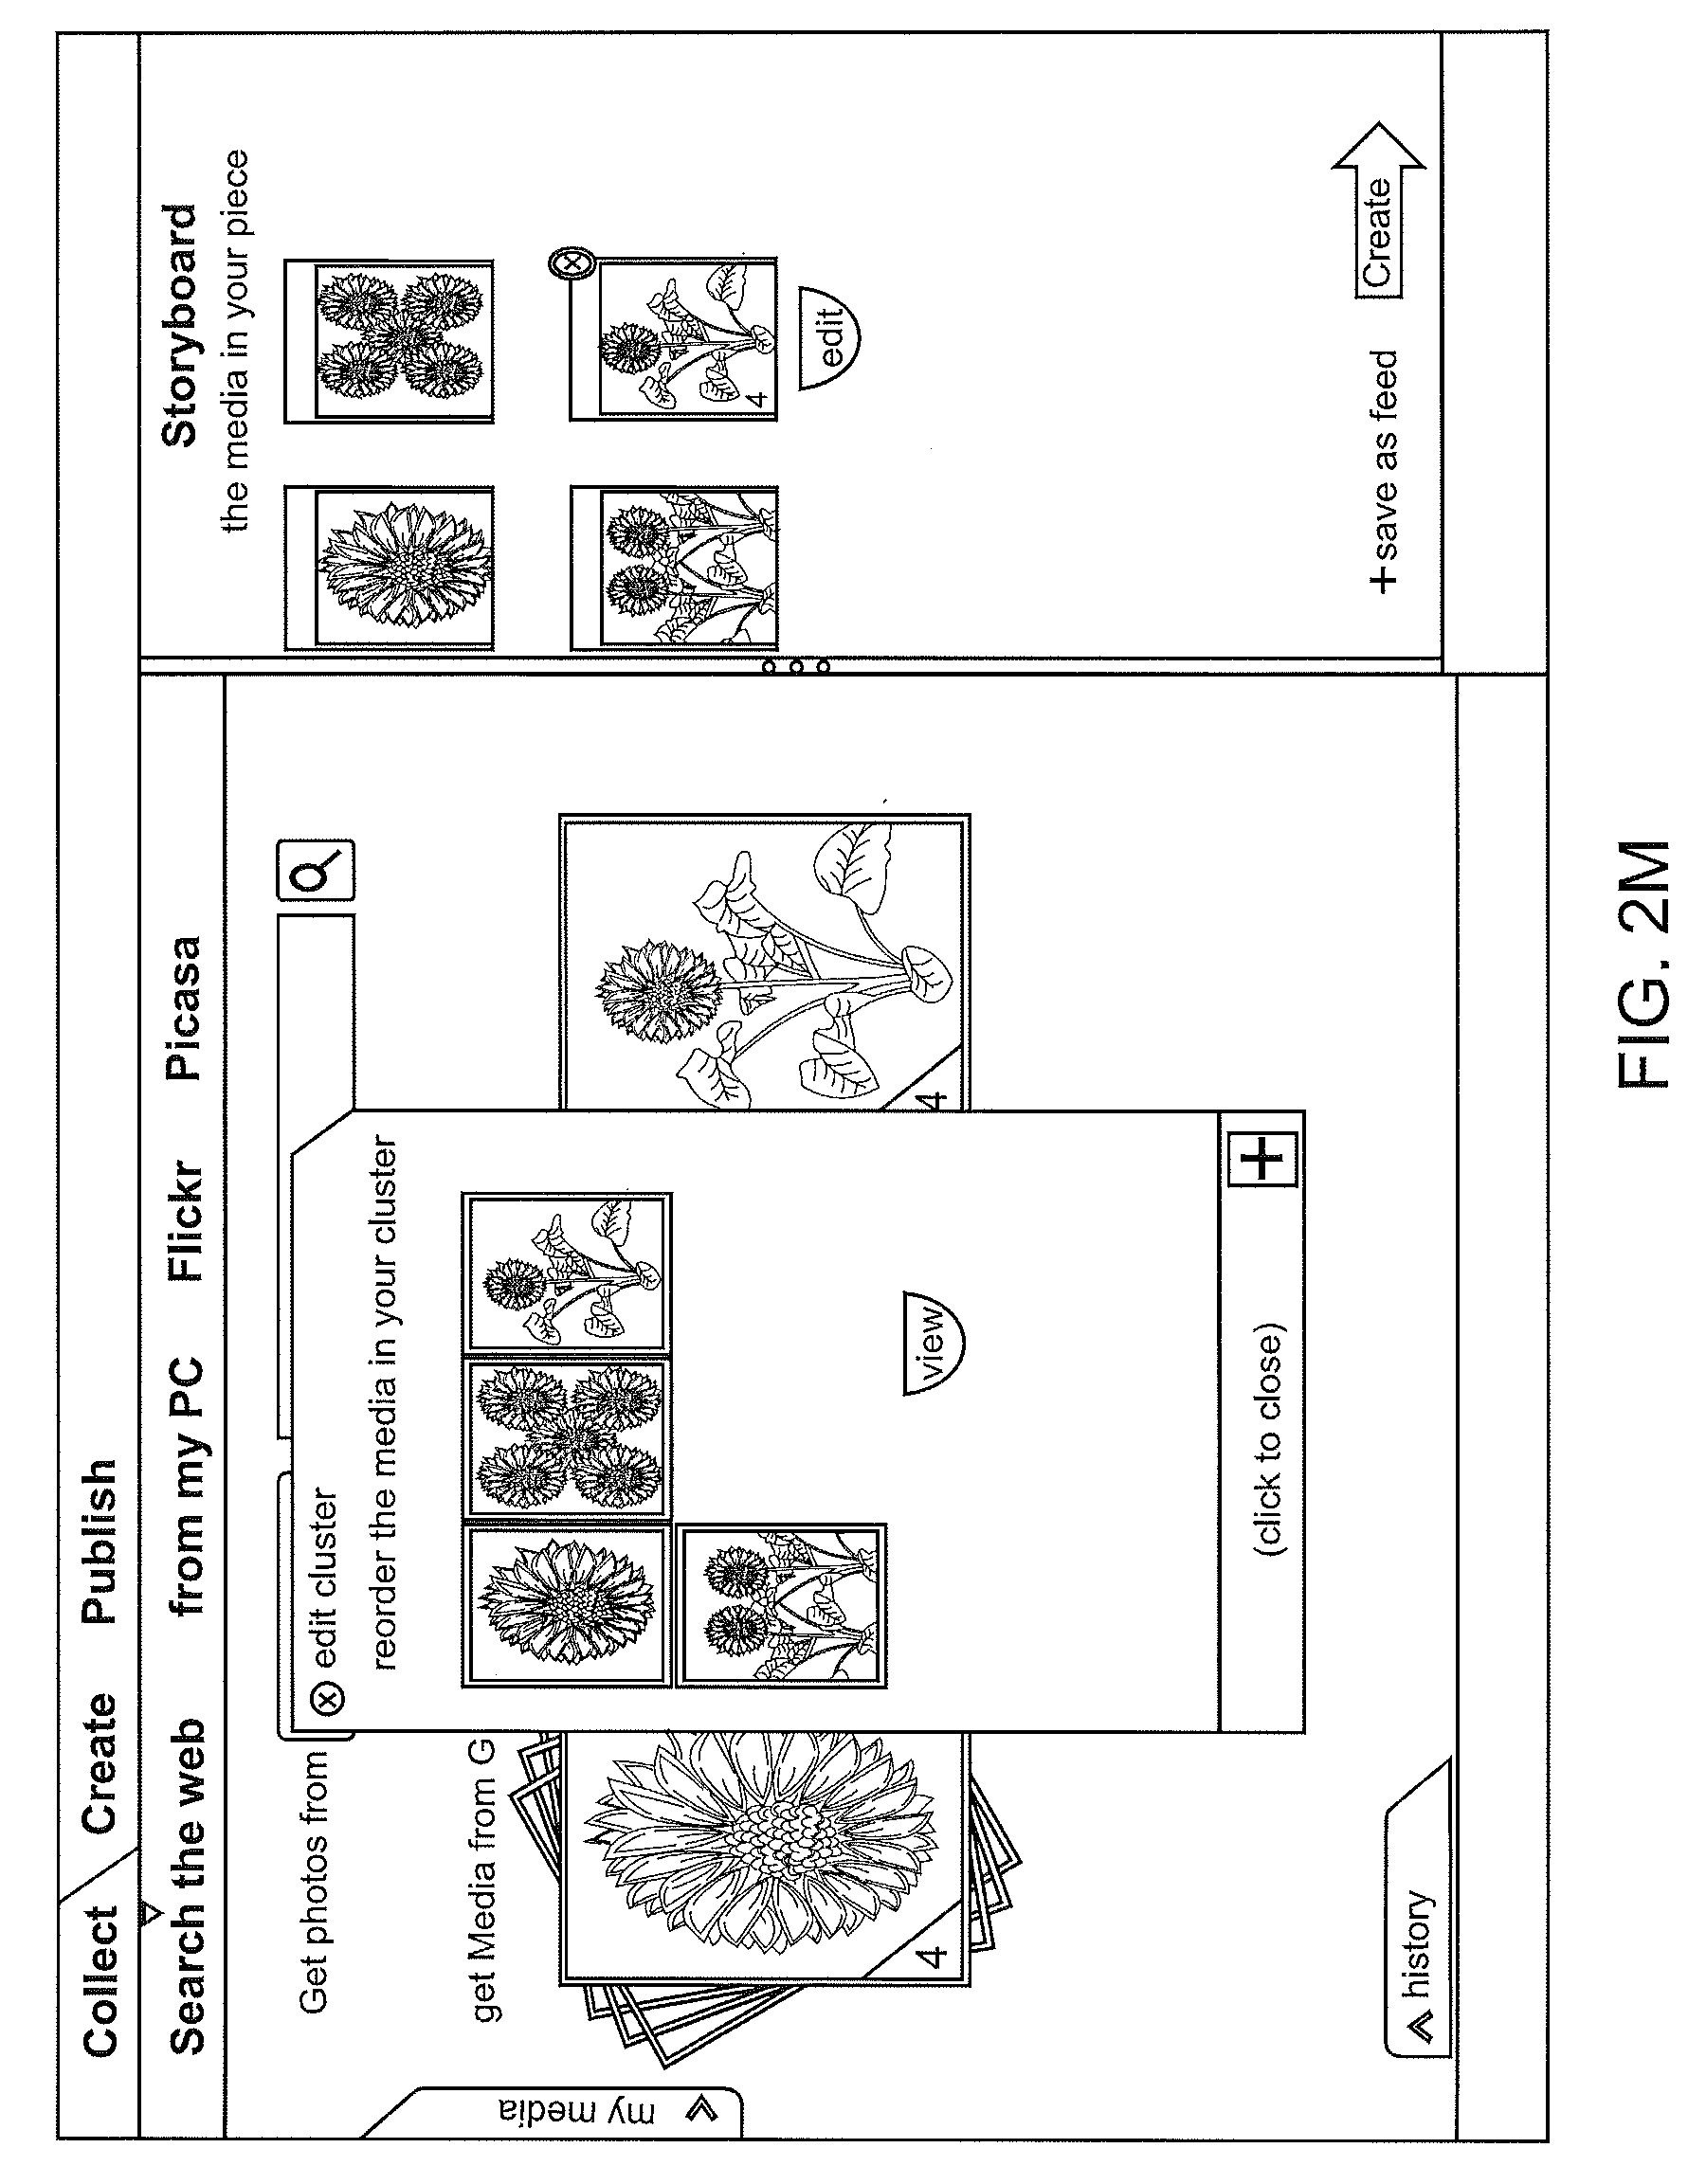 Brevet Us20100005119 System And Methods For The Cluster Of Media Overlay Circuit Board Plain White Background Flickr Photo Patent Drawing